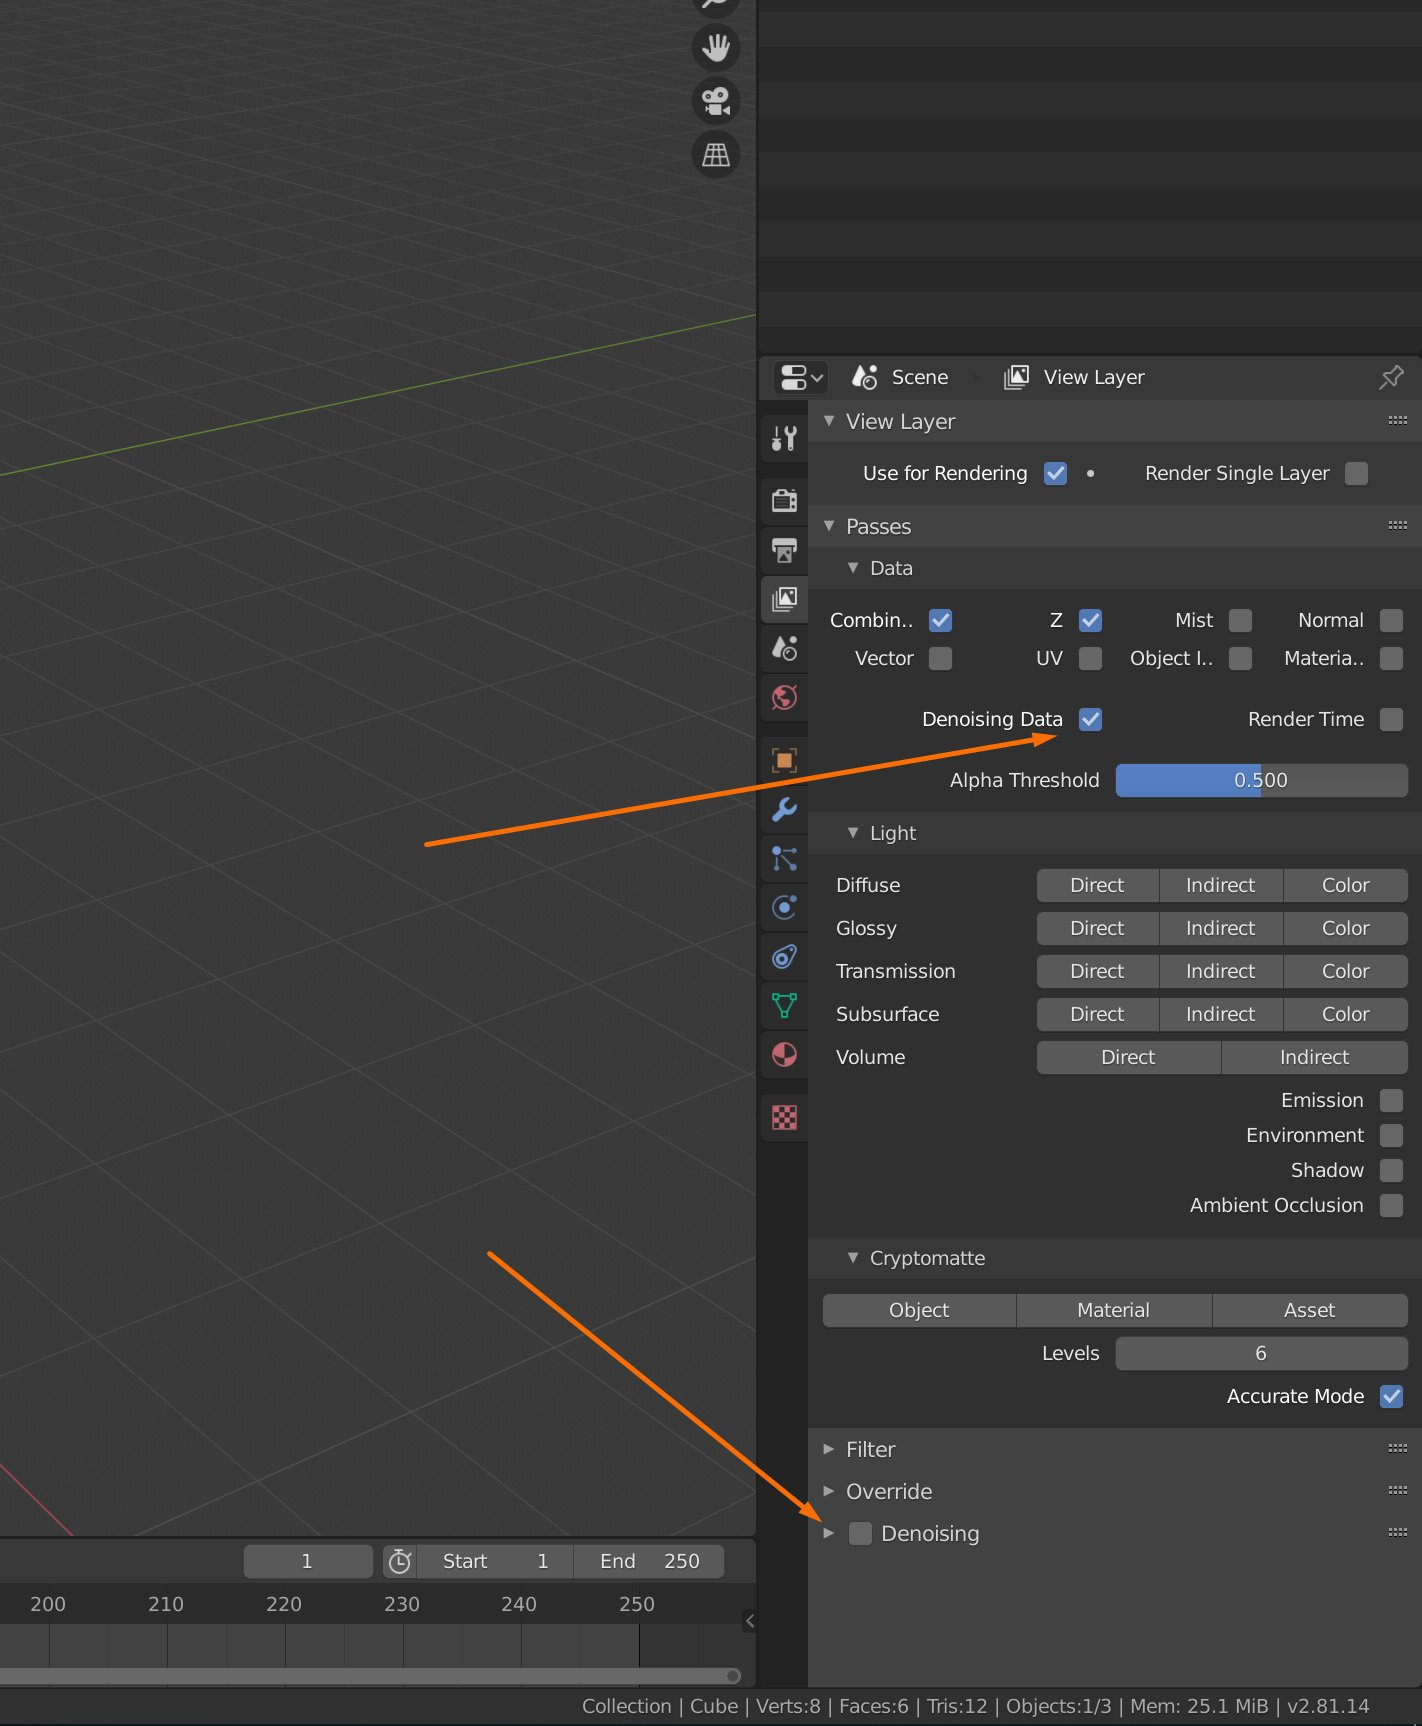 Screenshot of Blender 2.81 View Layer Properites setting up for Denoising with IOID